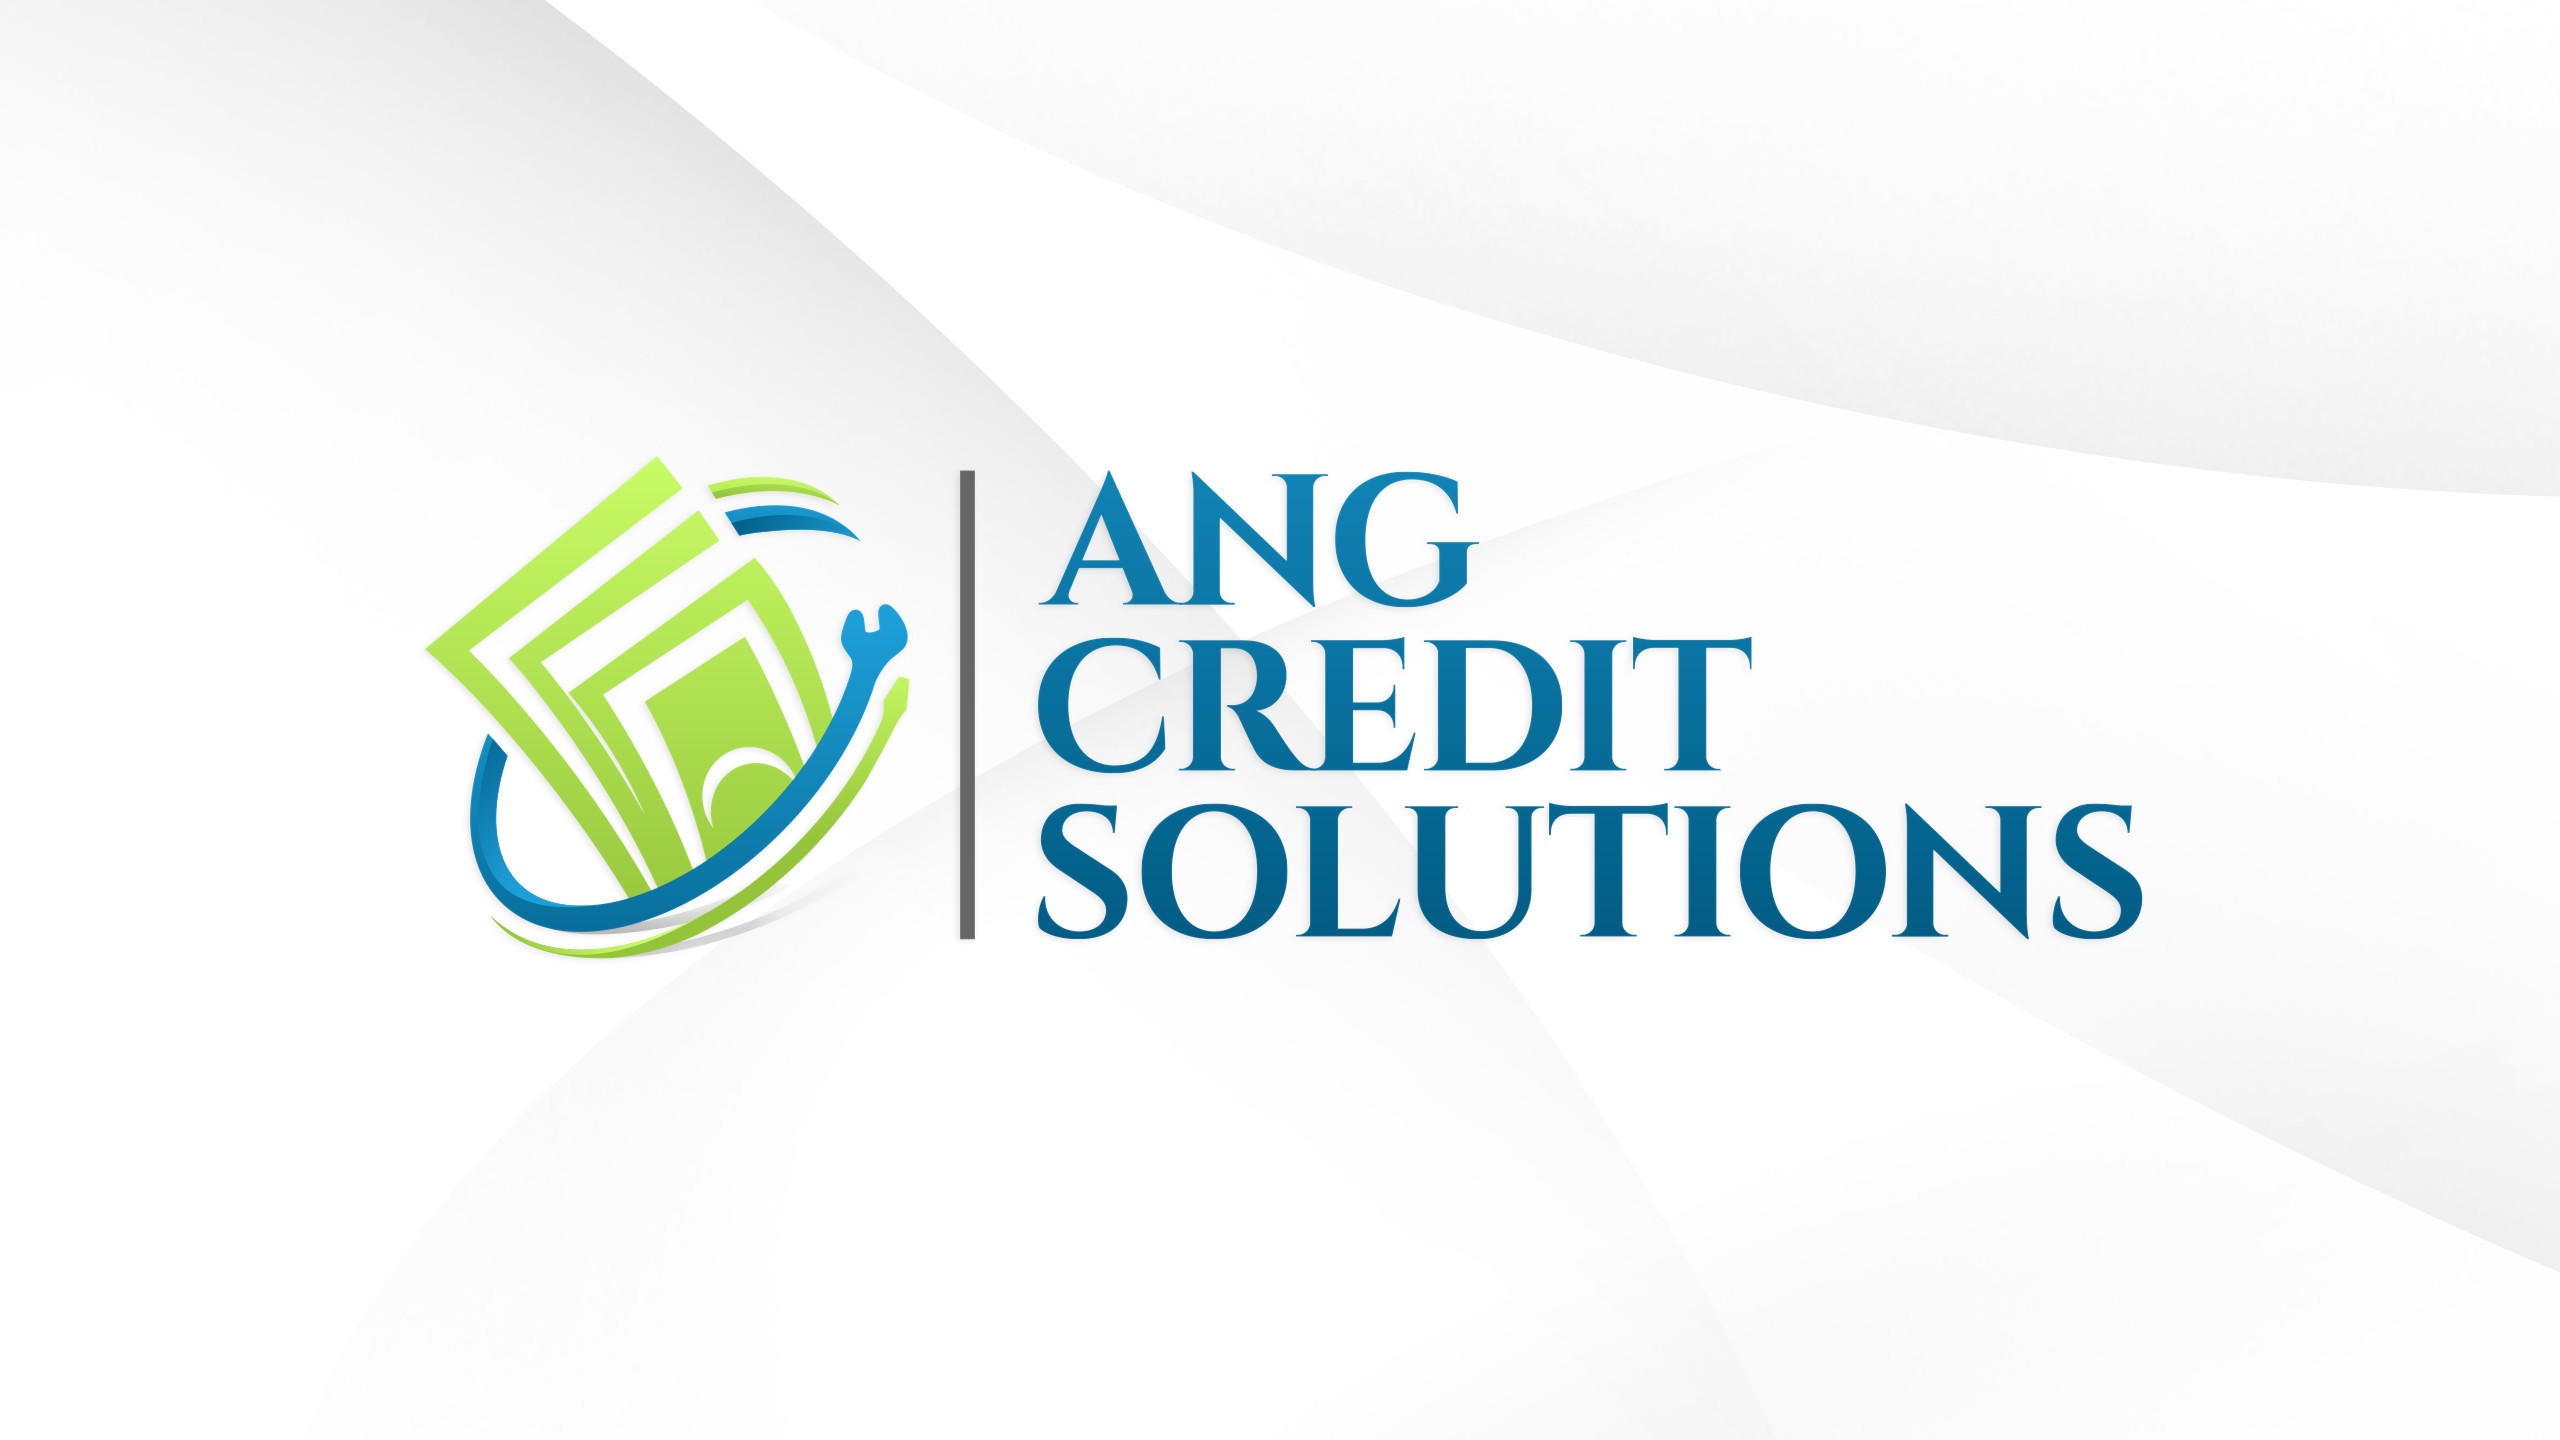 ANG Credit Solutions - Credit Repair Services Company Houston image 0